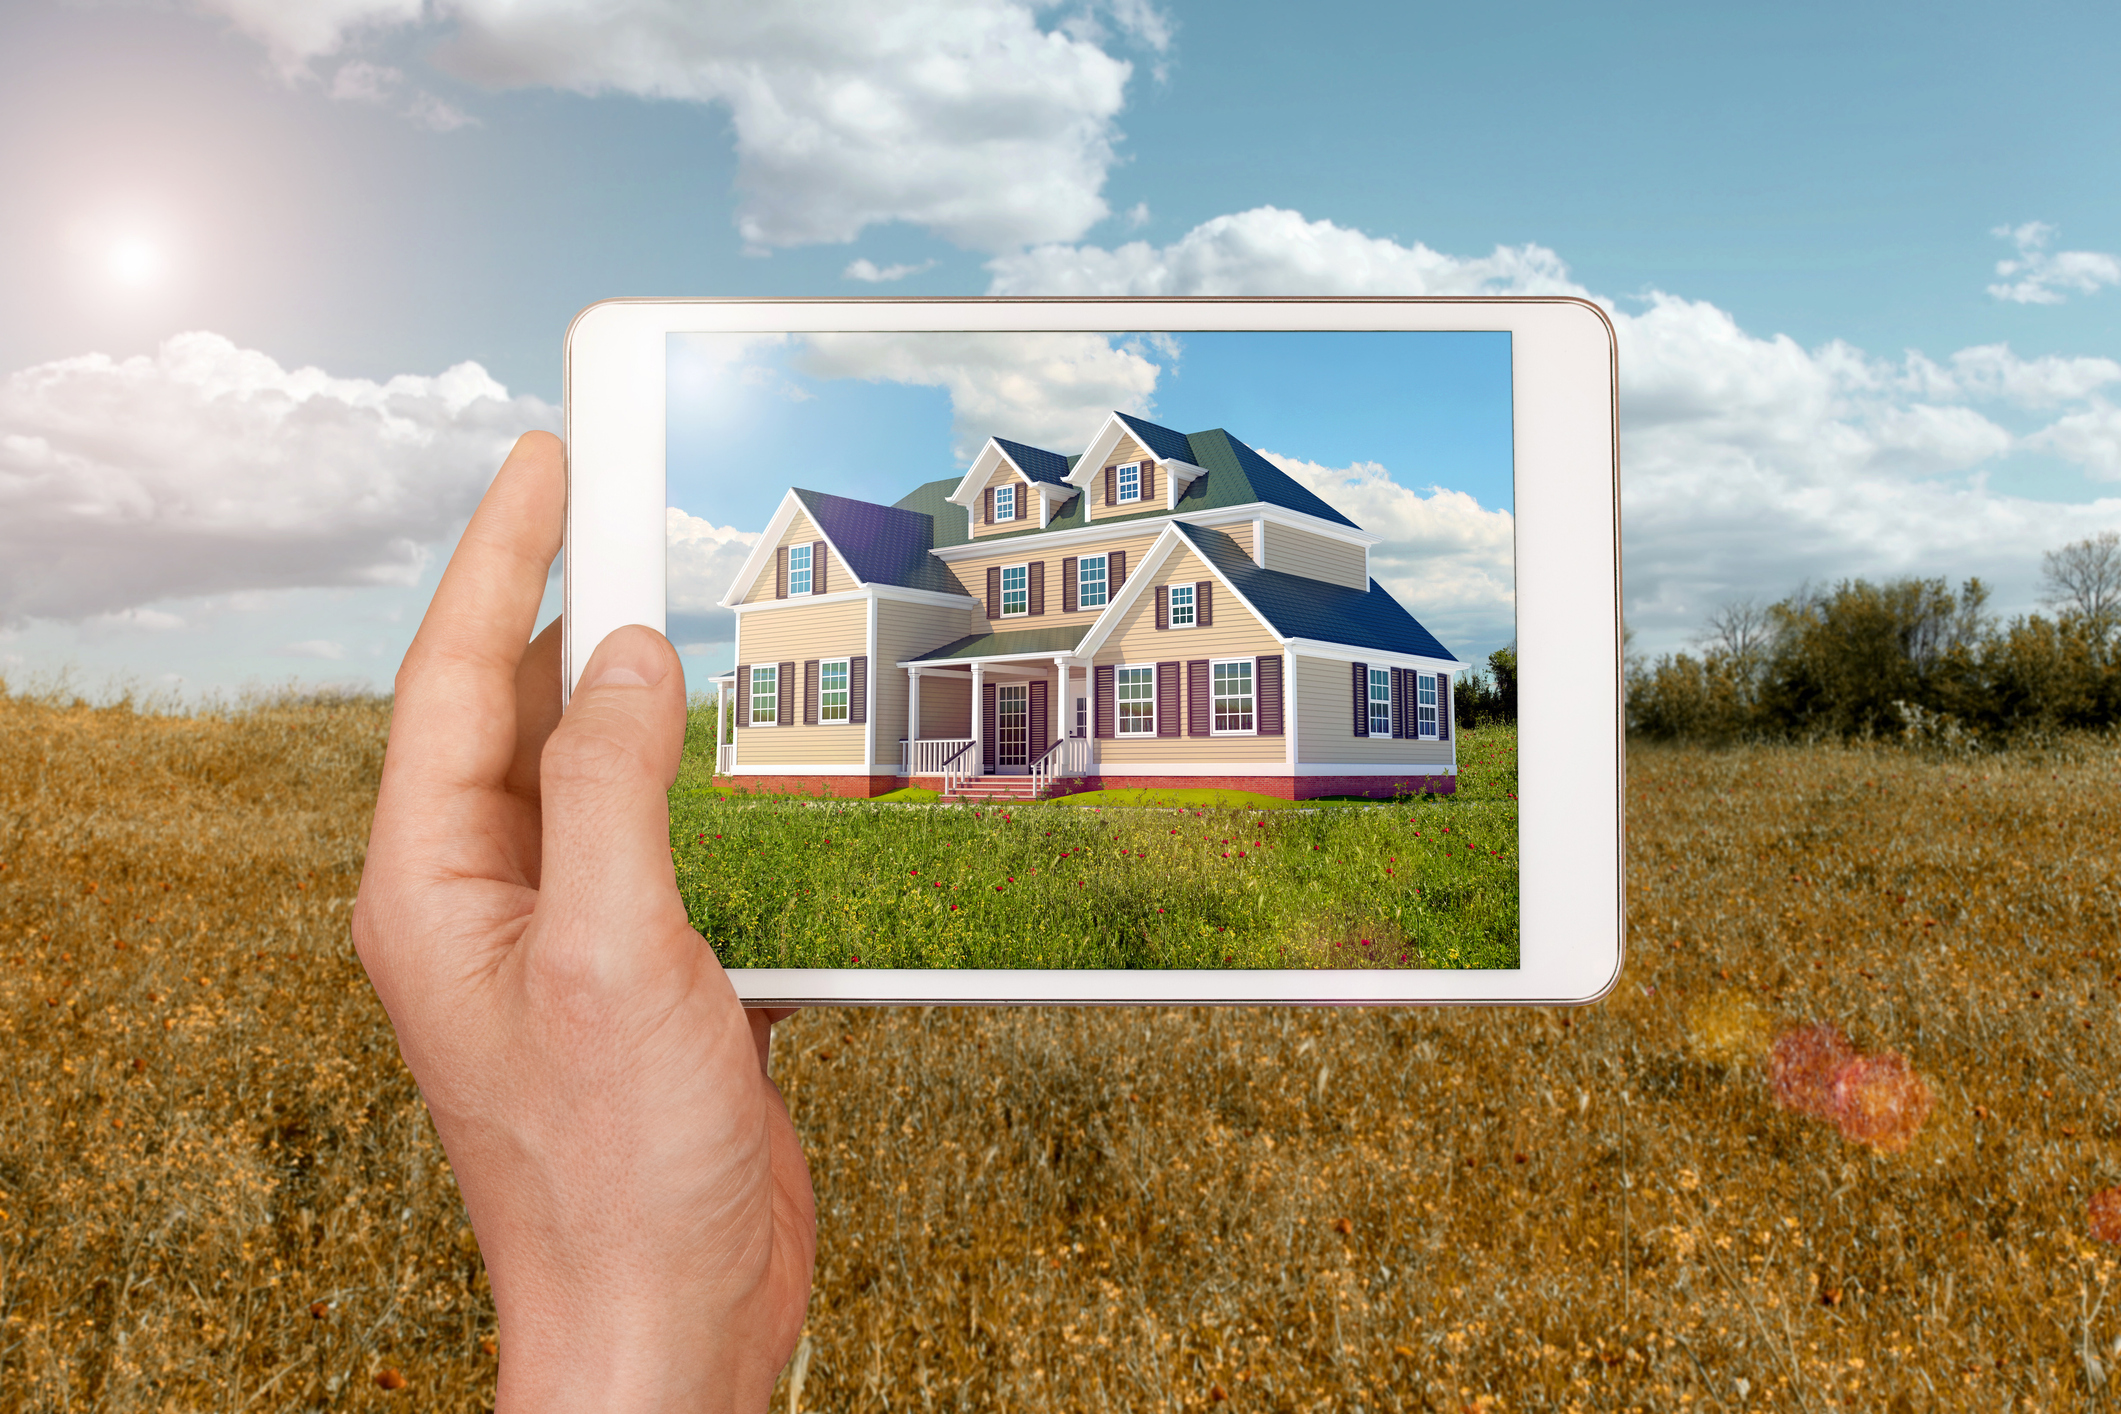 Tablet computer showing image of a new house to build